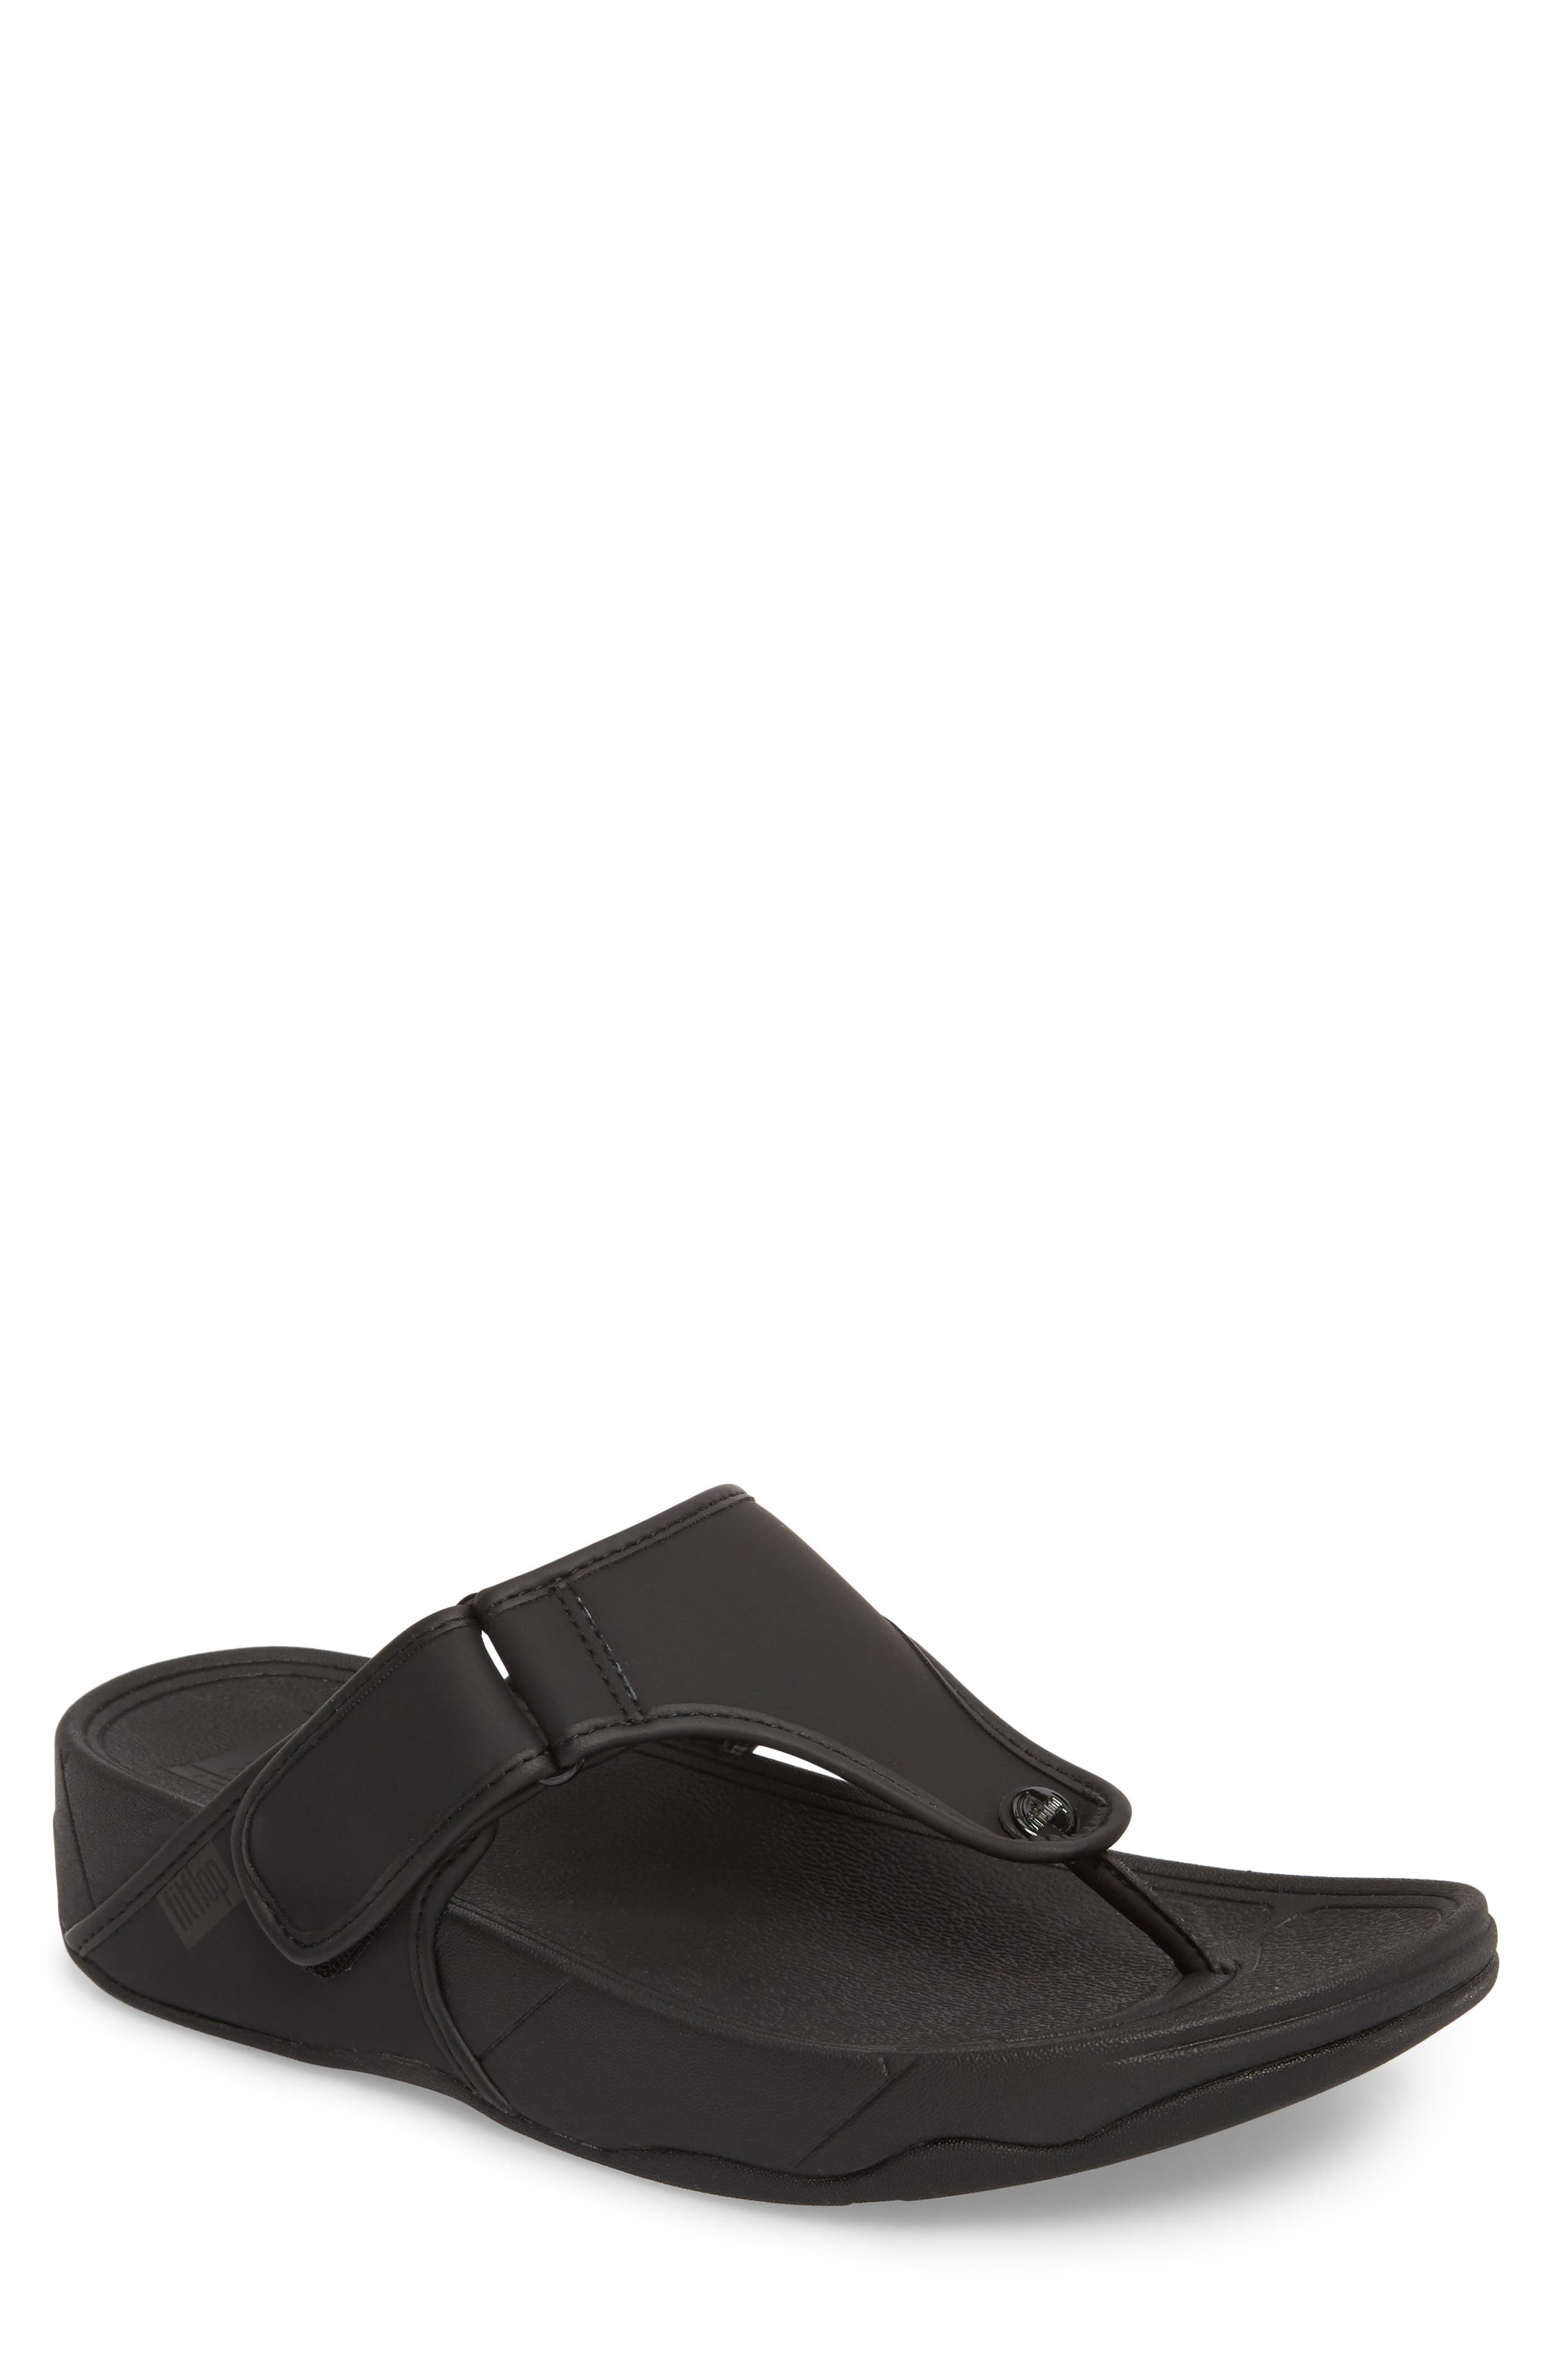 Trakk<sup>™</sup> II Sandal,                         Main,                         color, Black Neoprene